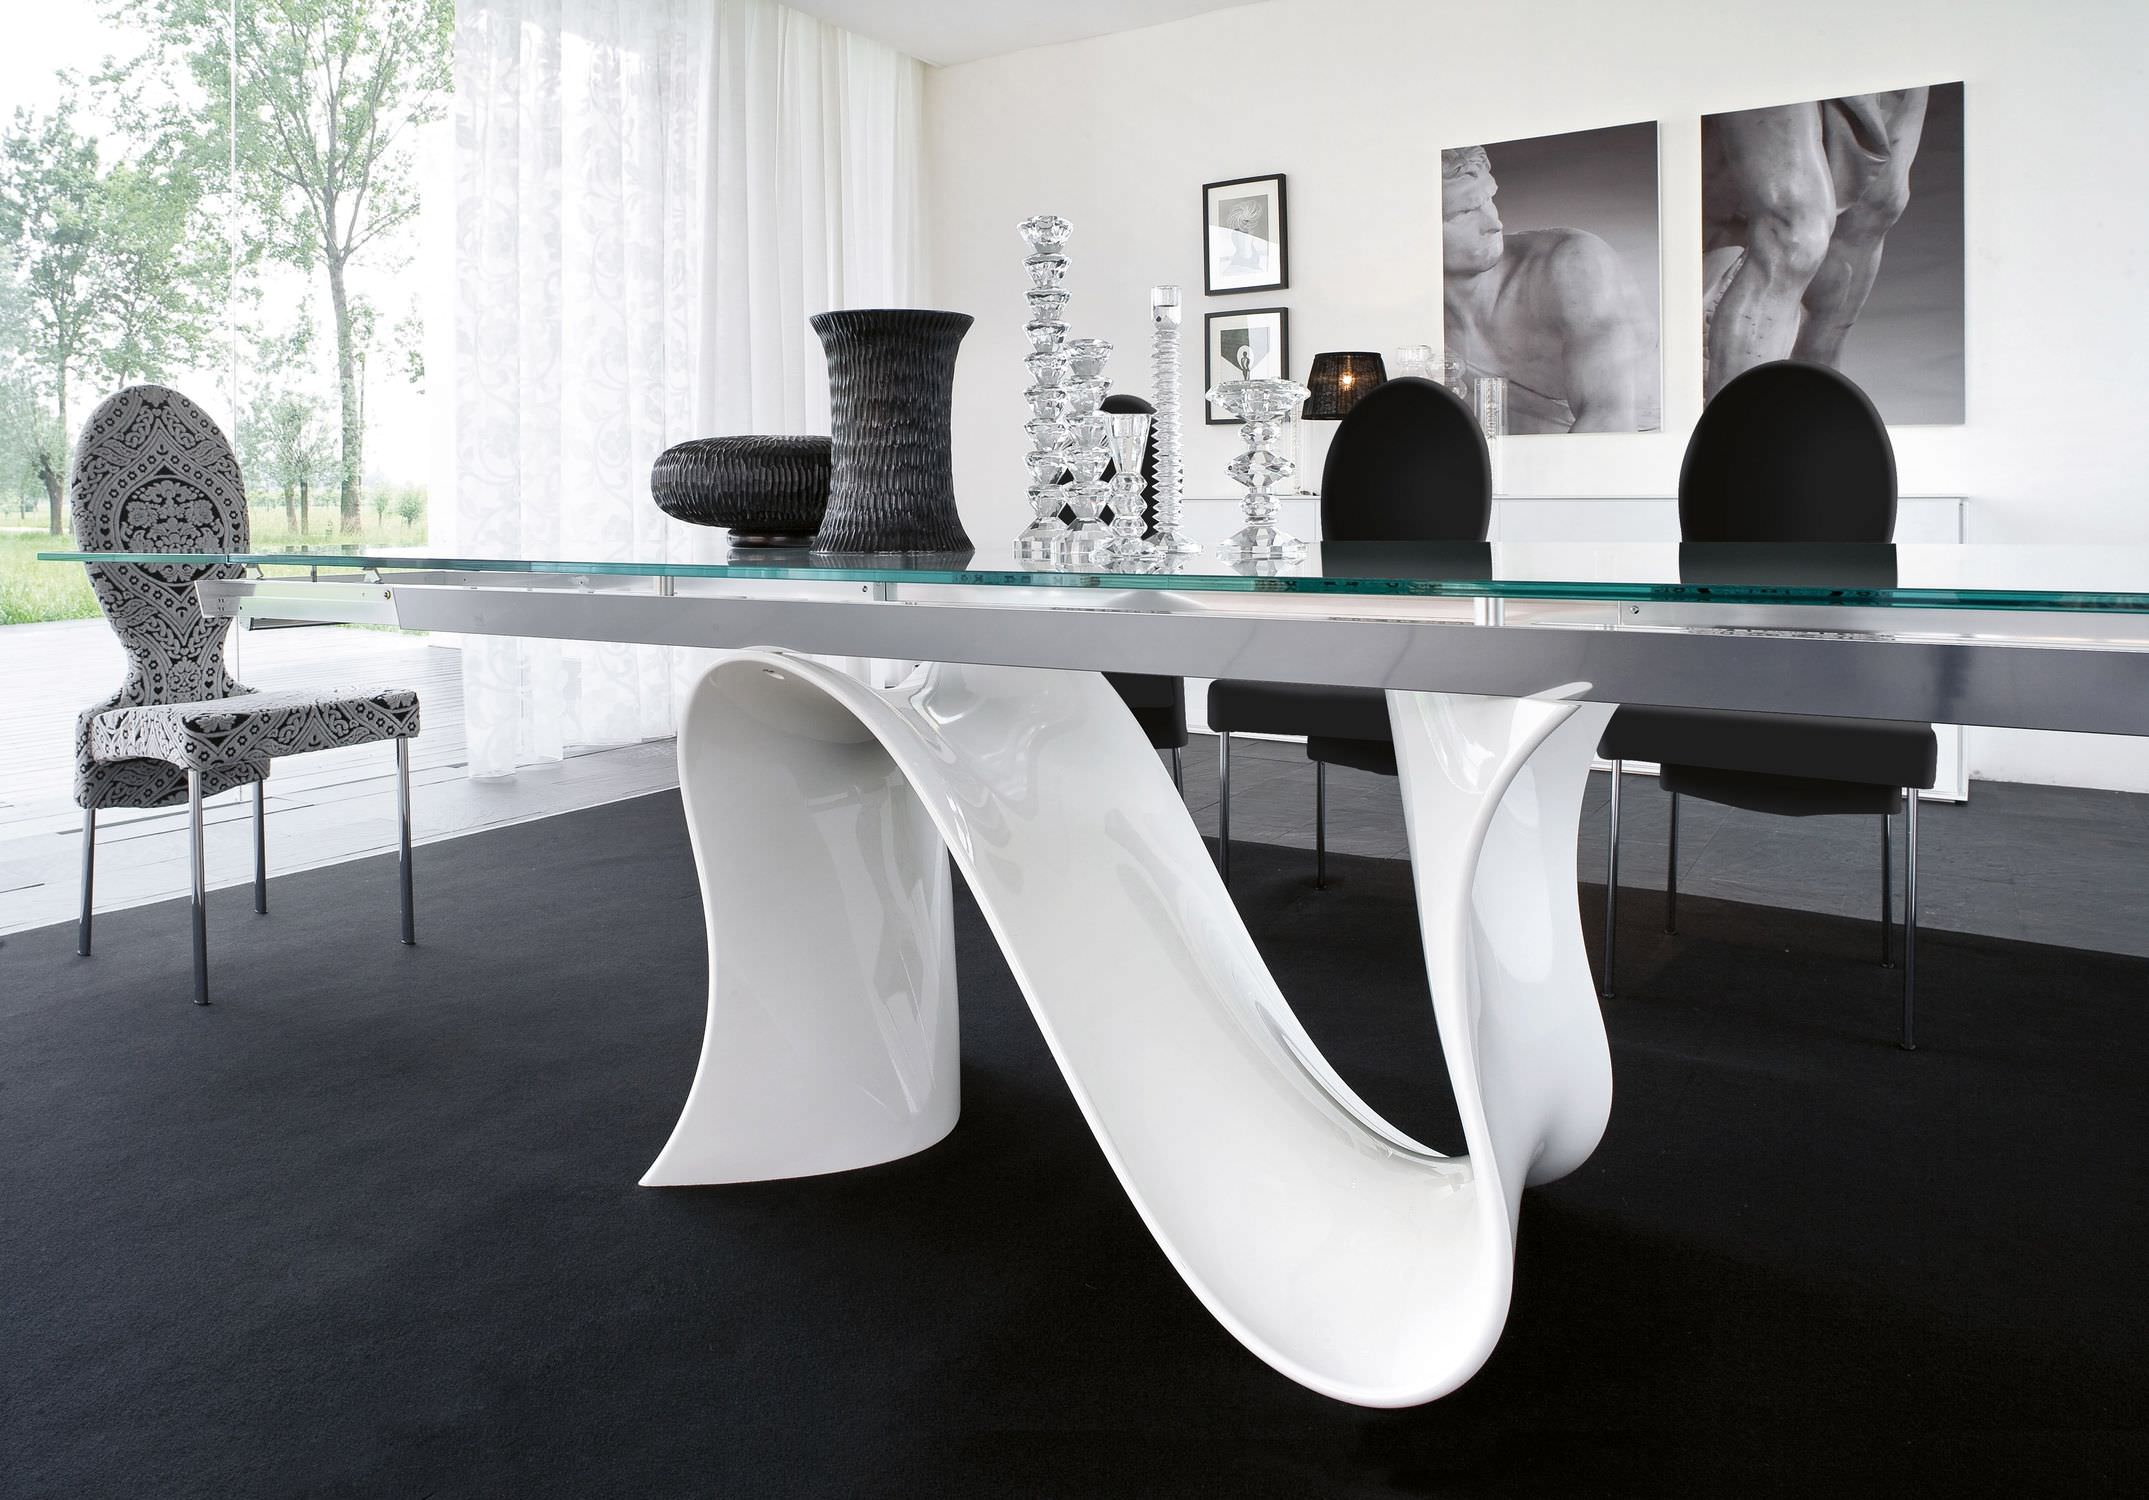 Unbelievable Contemporary Dining Table Design (View 2 of 11)